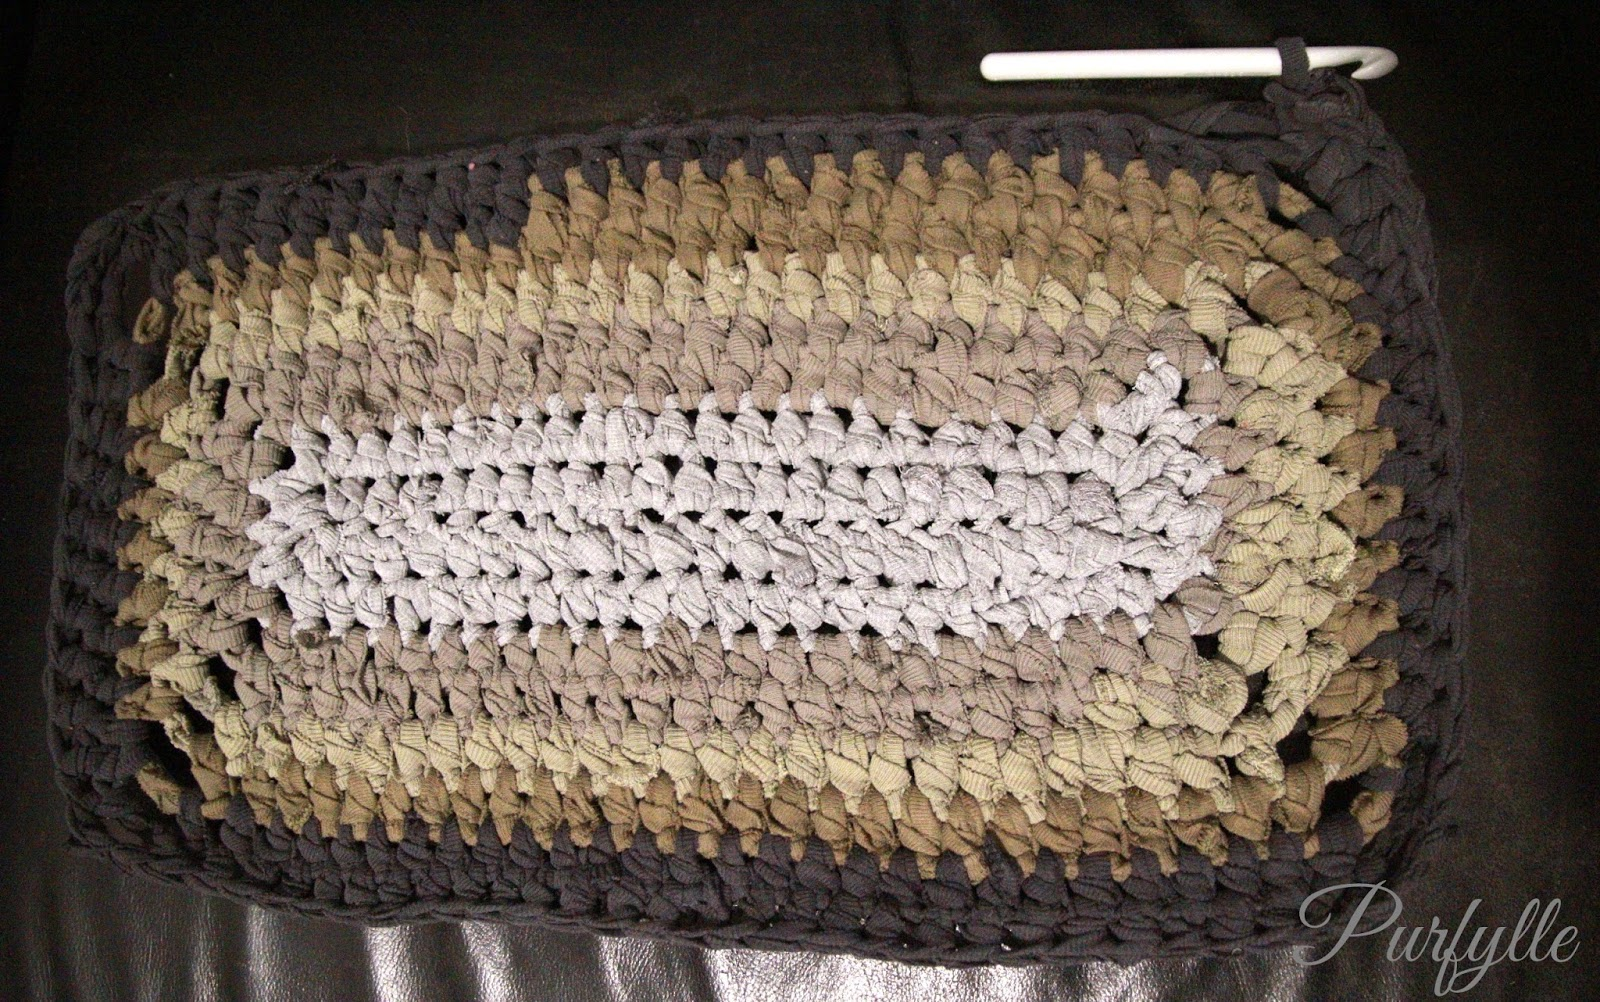 upcycled T-shirt rag-rug crochet bath mat